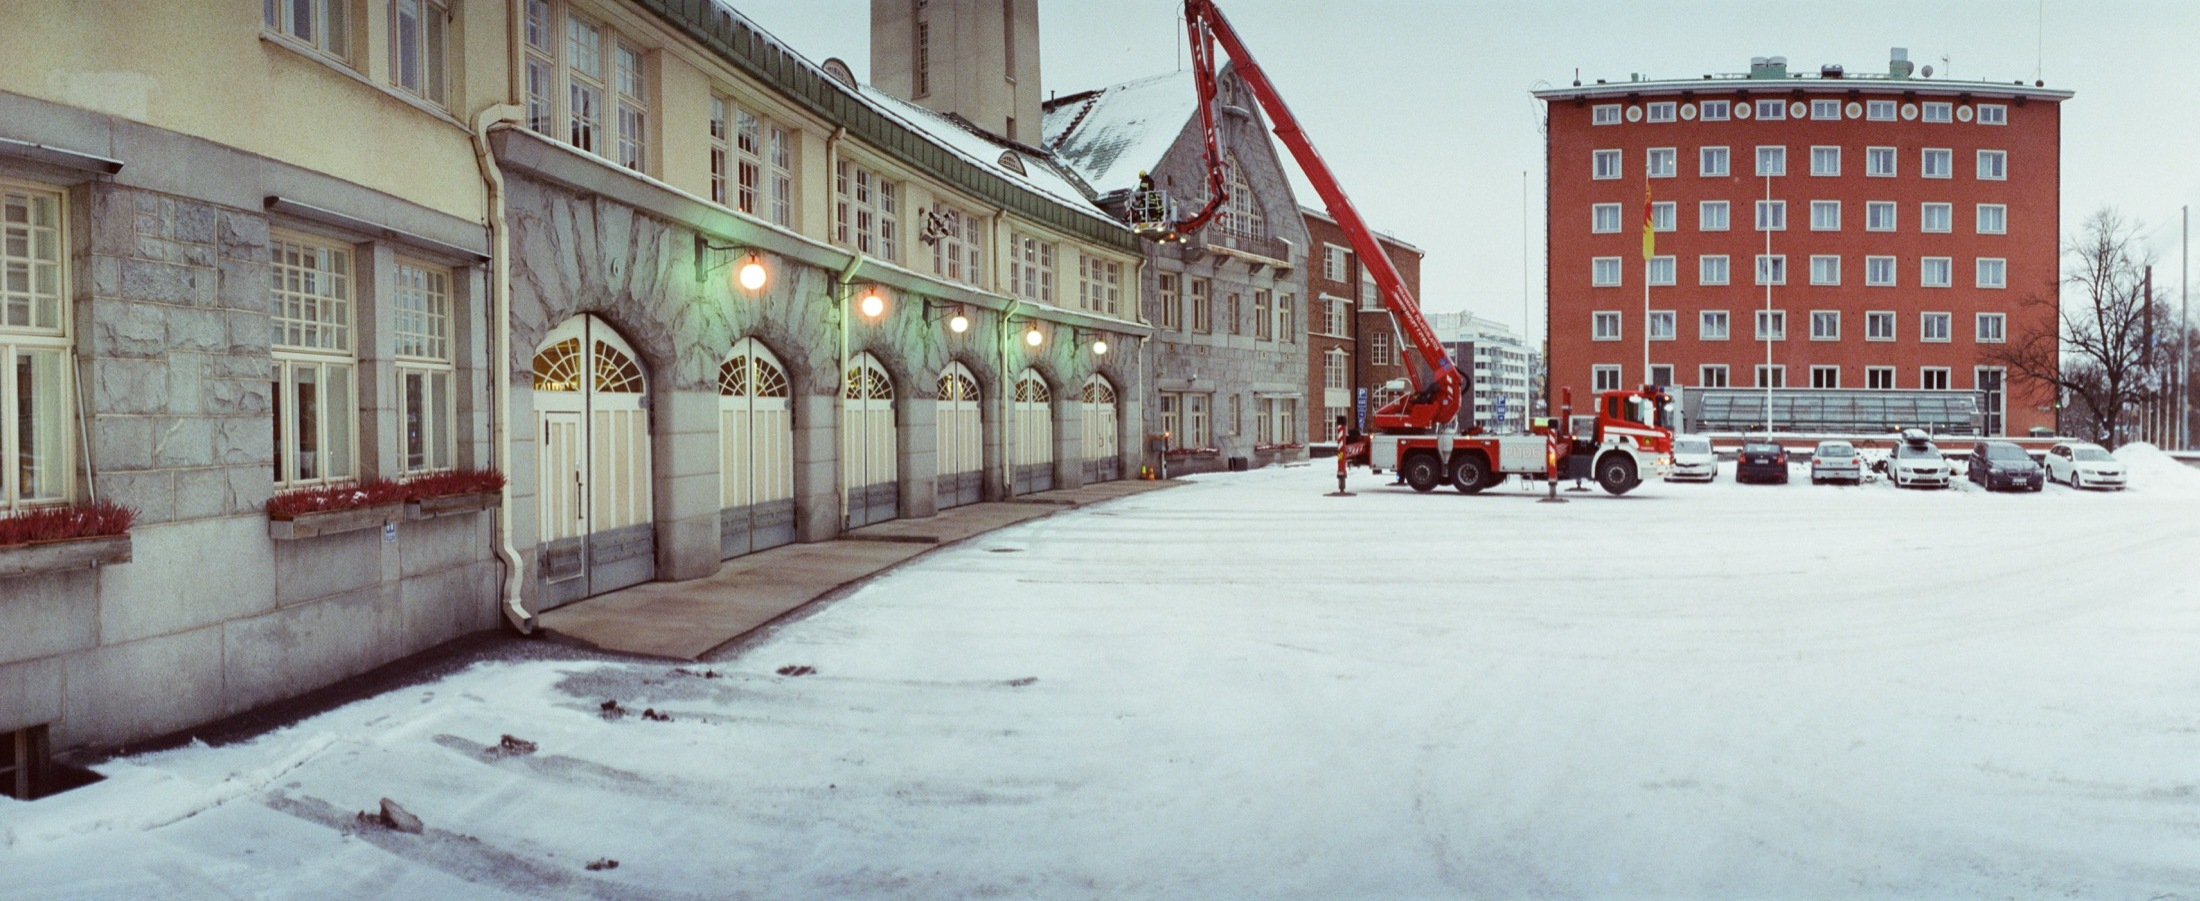 cameraville_horizon_202_panoramic_35mm_tampere_cineStill800_12.jpg